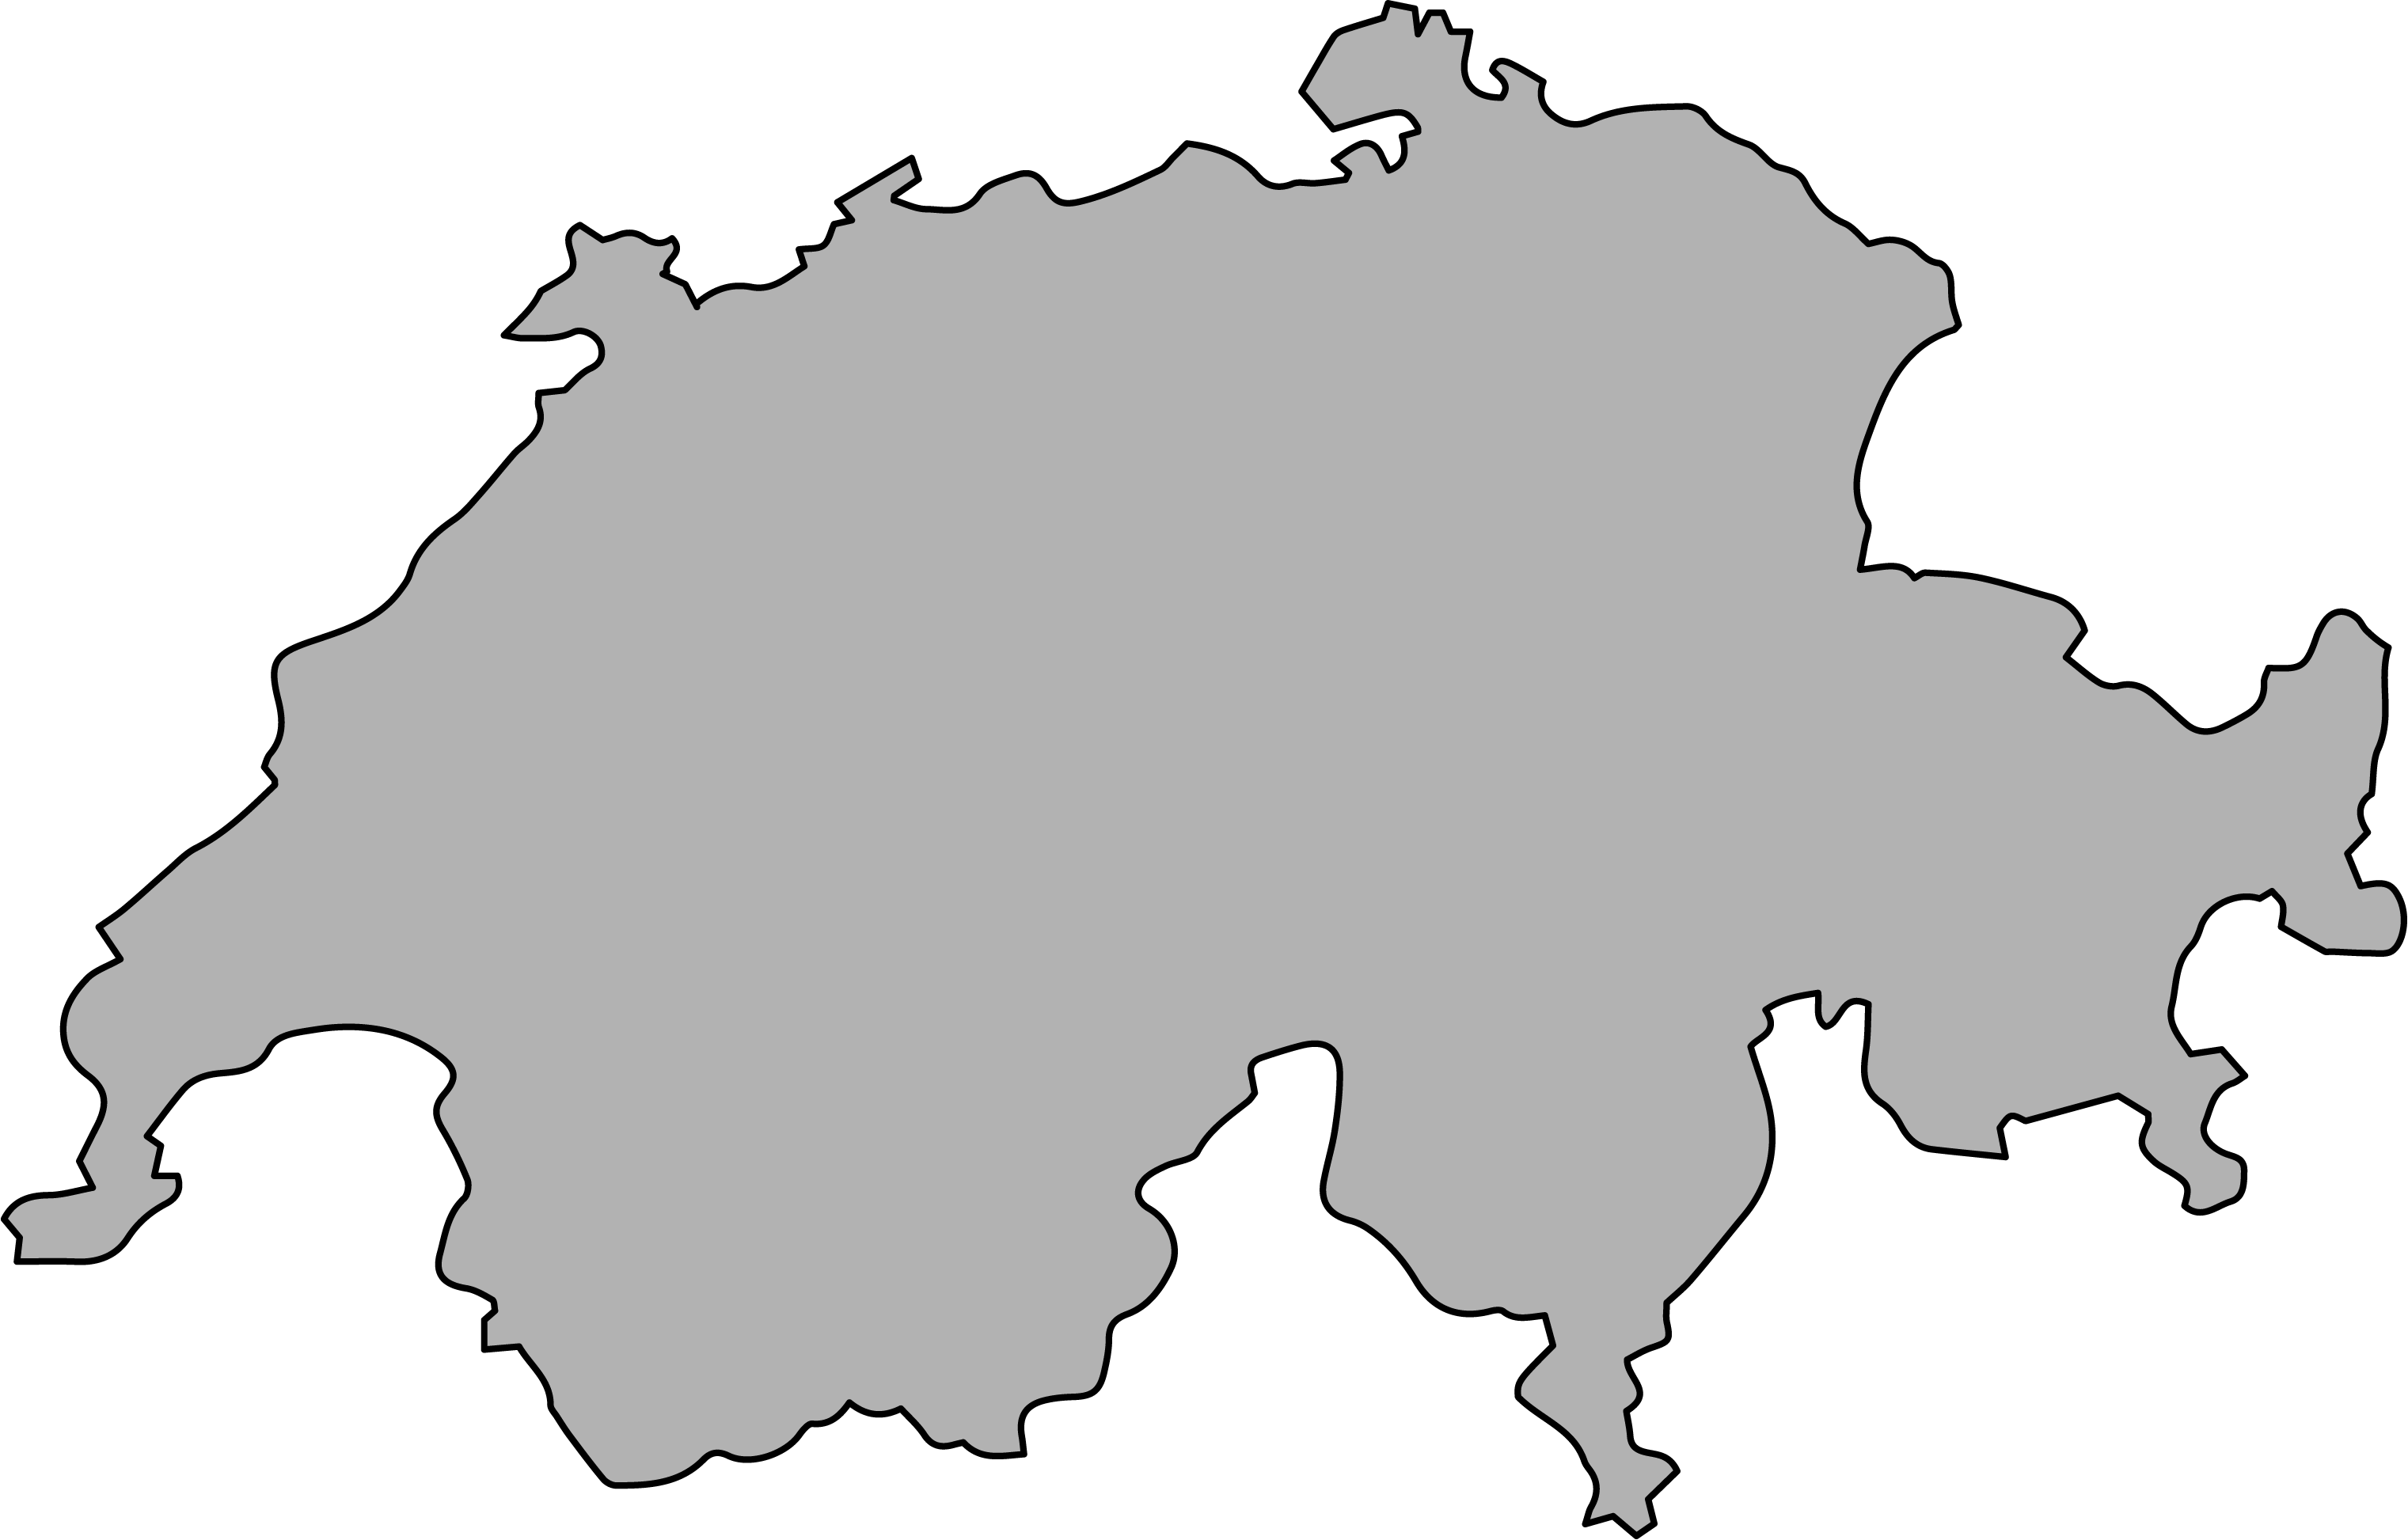 Switzerland borders image